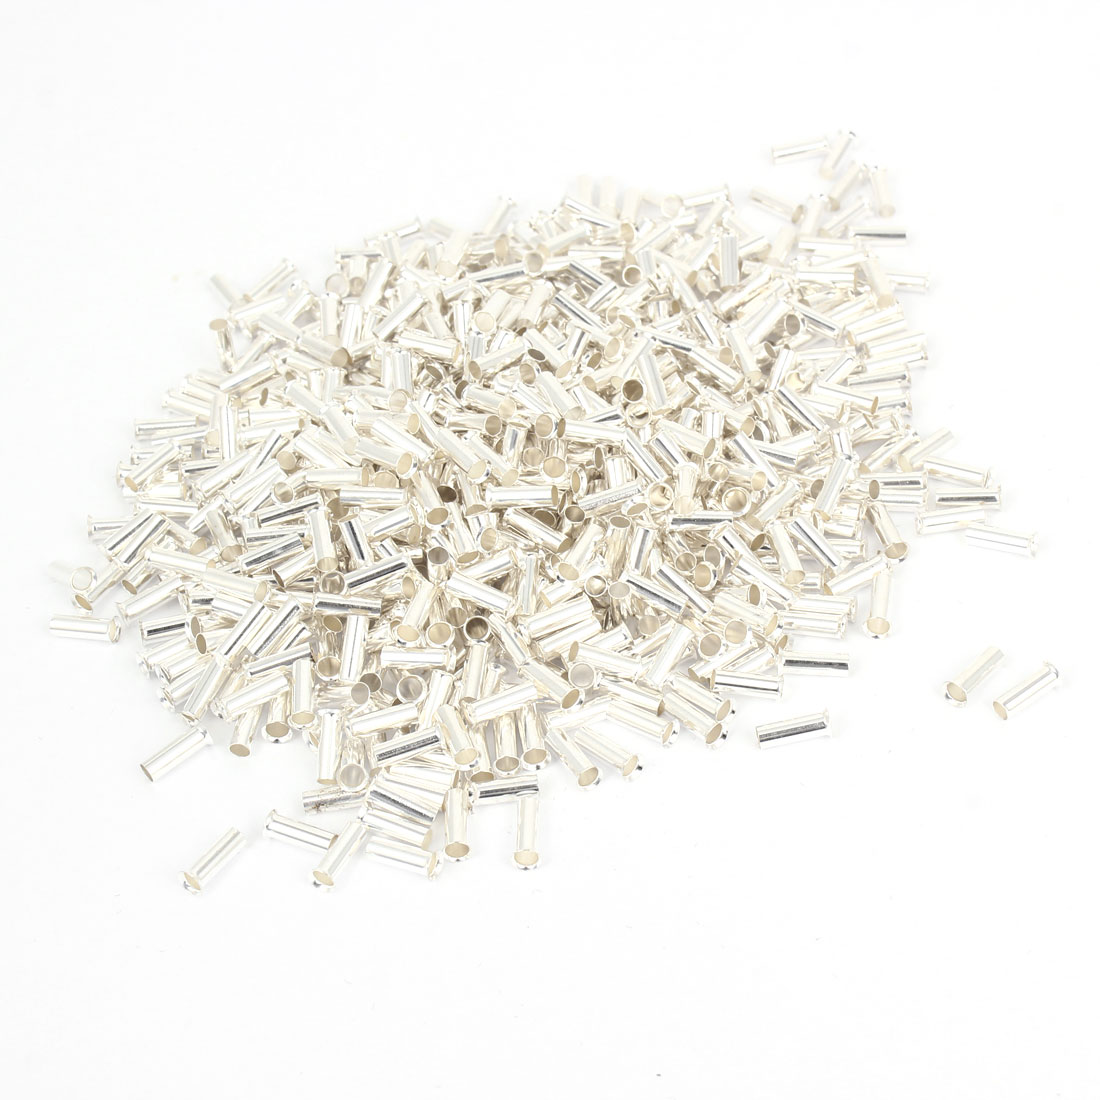 750pcs Uninsulated Wire Ferrules EN2512 for 14AWG 2.5mm Square Cable